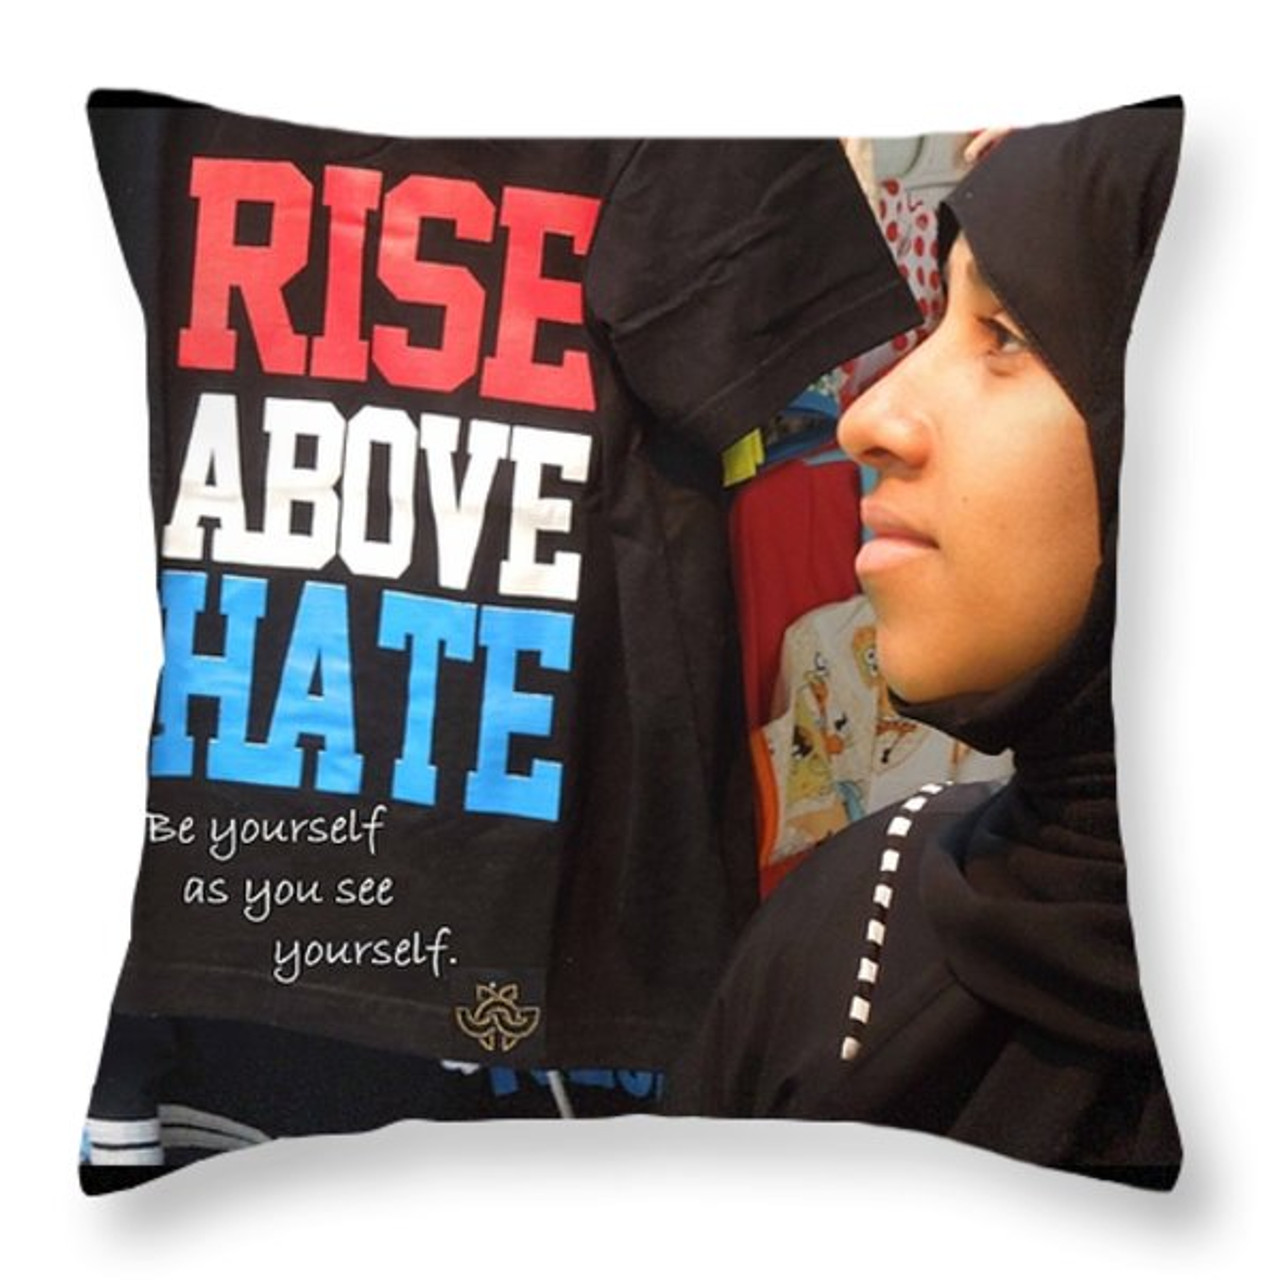 Throw pillow. Purchase here!